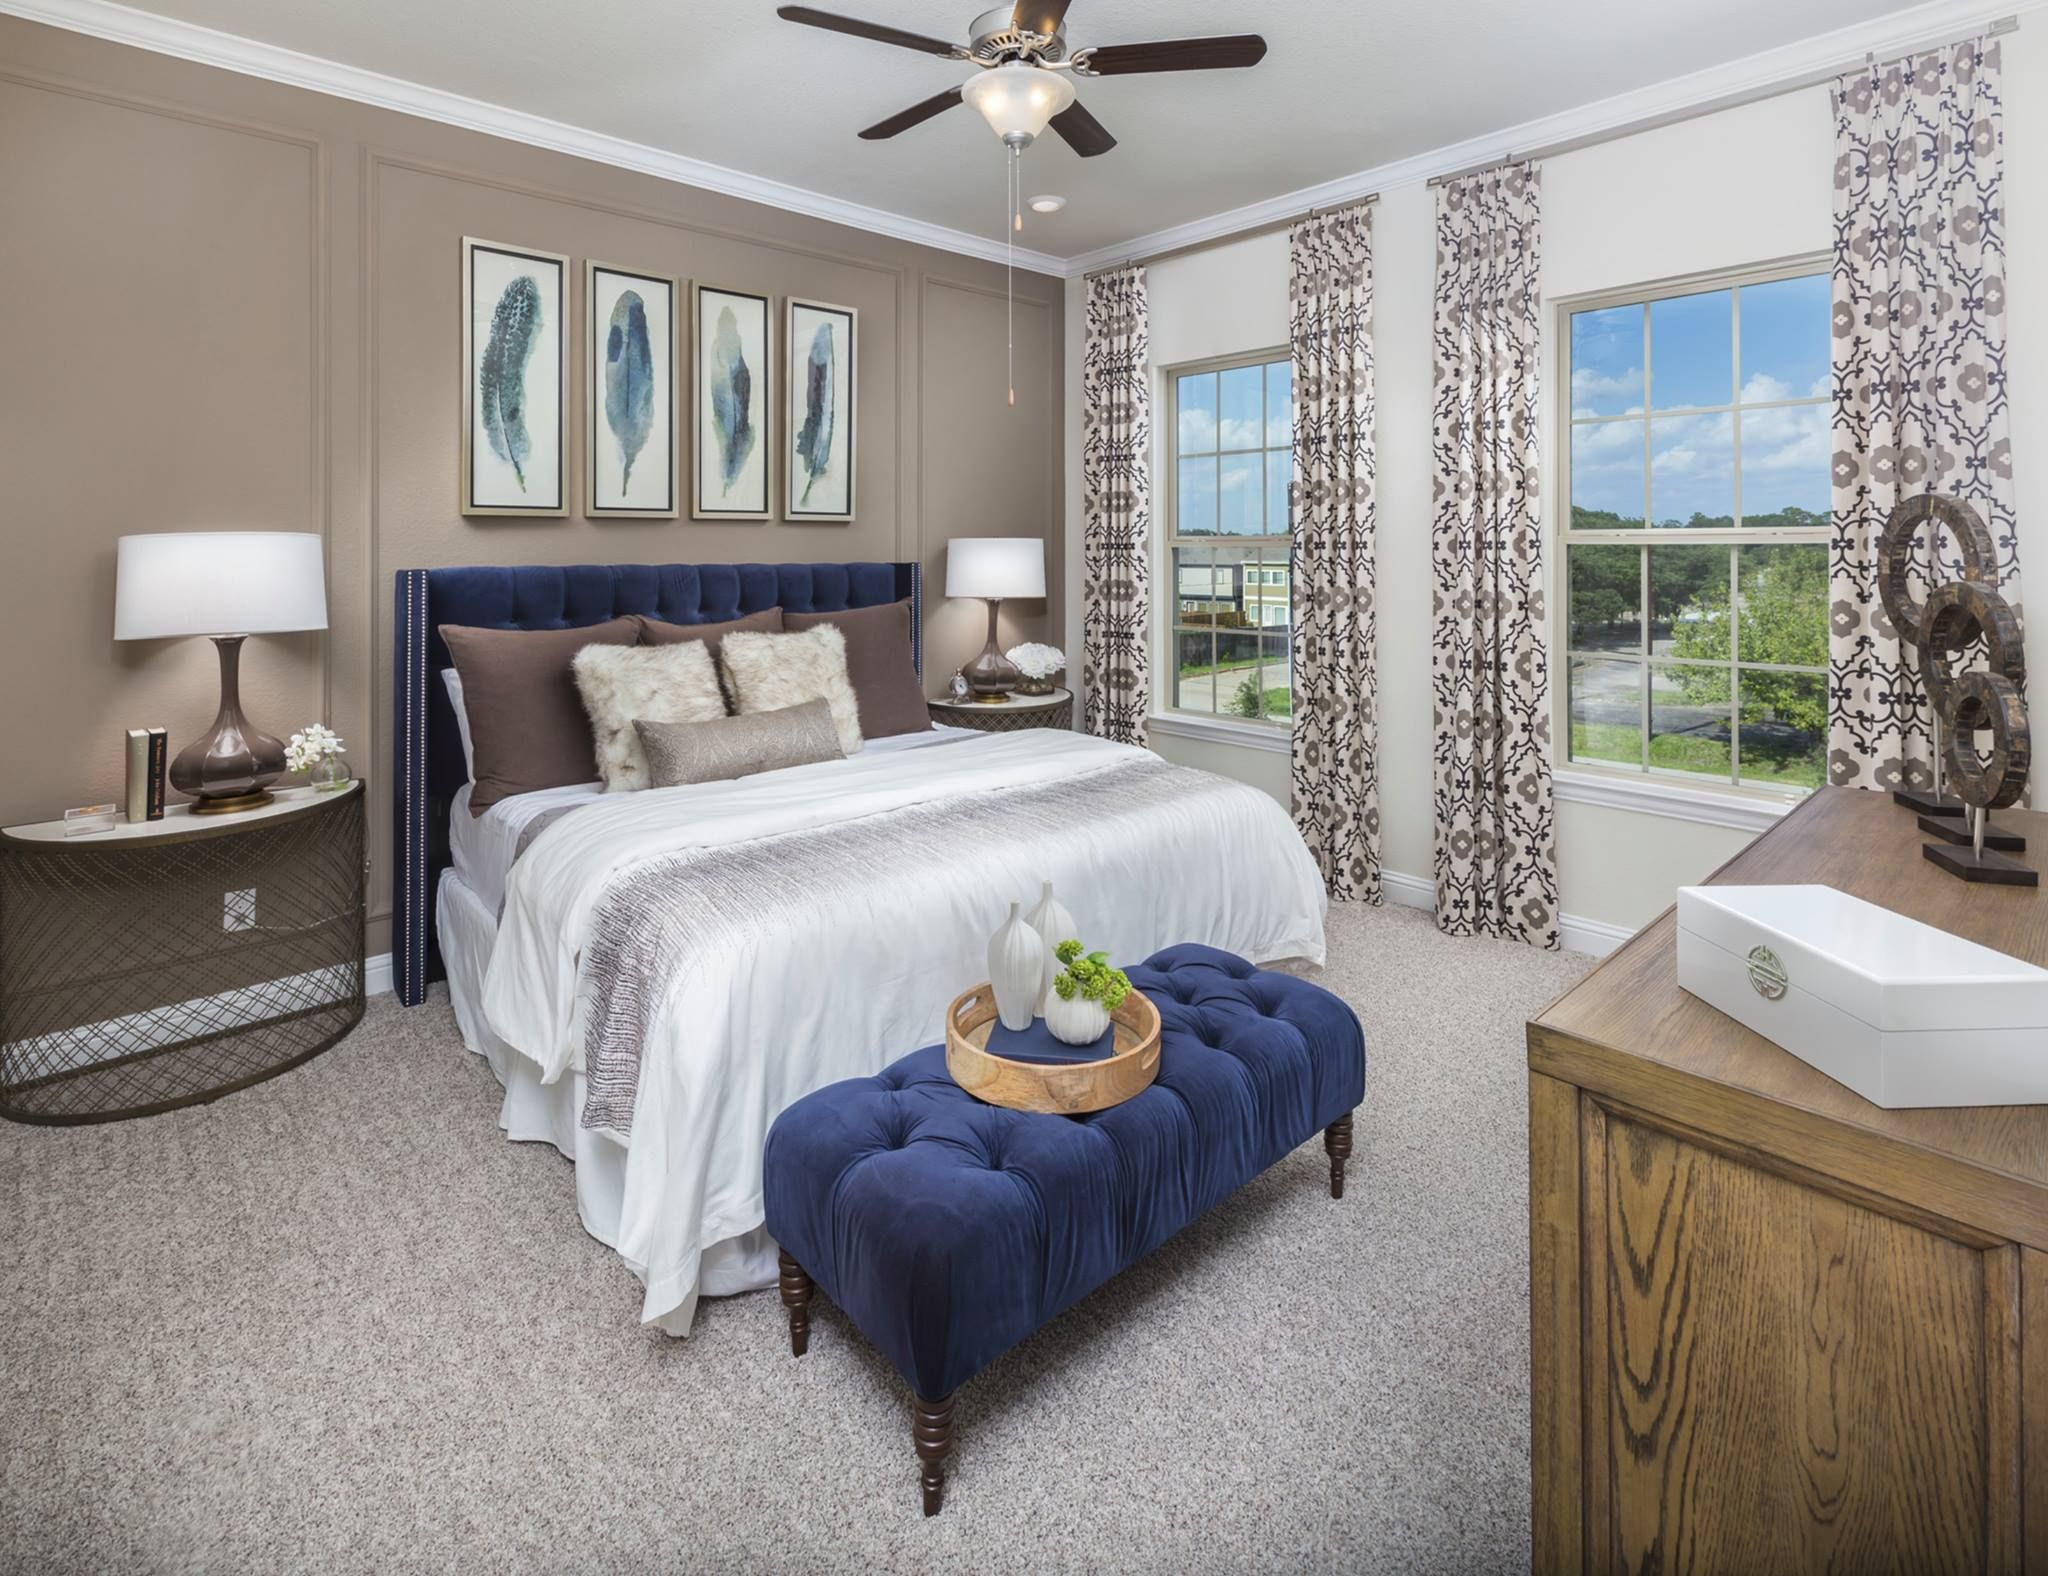 Master bedroom nightstand decor  This Master Retreat is Lovely  The Bench and the Nightstands are